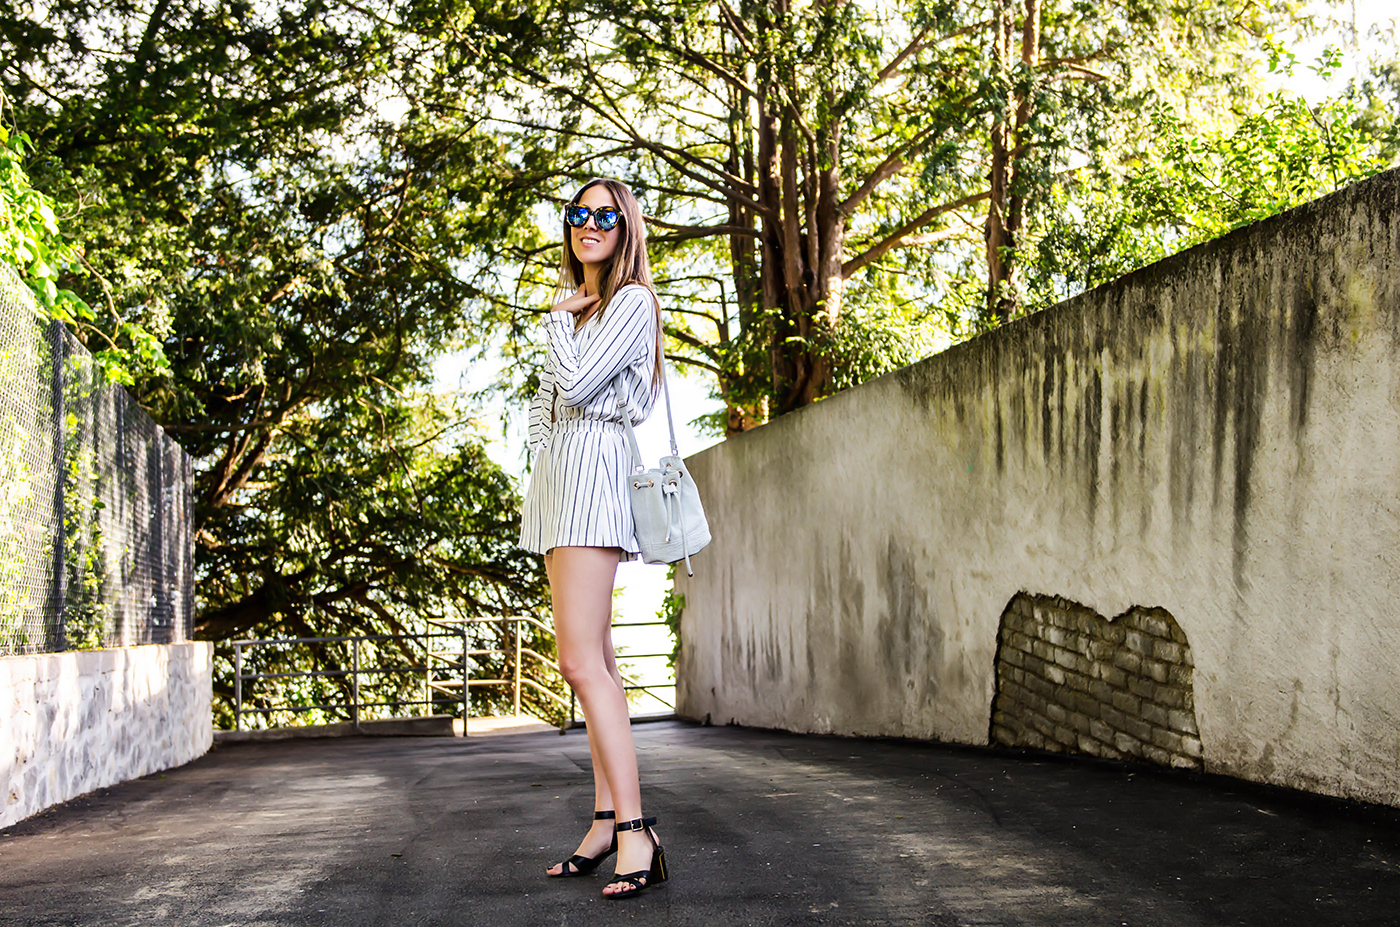 alison liaudat, blog from switzerland, blog mode suisee, classic look, dress, Fashion blogger von der Schweiz, h&m, swiss fashion blogger, trend spring 2015,